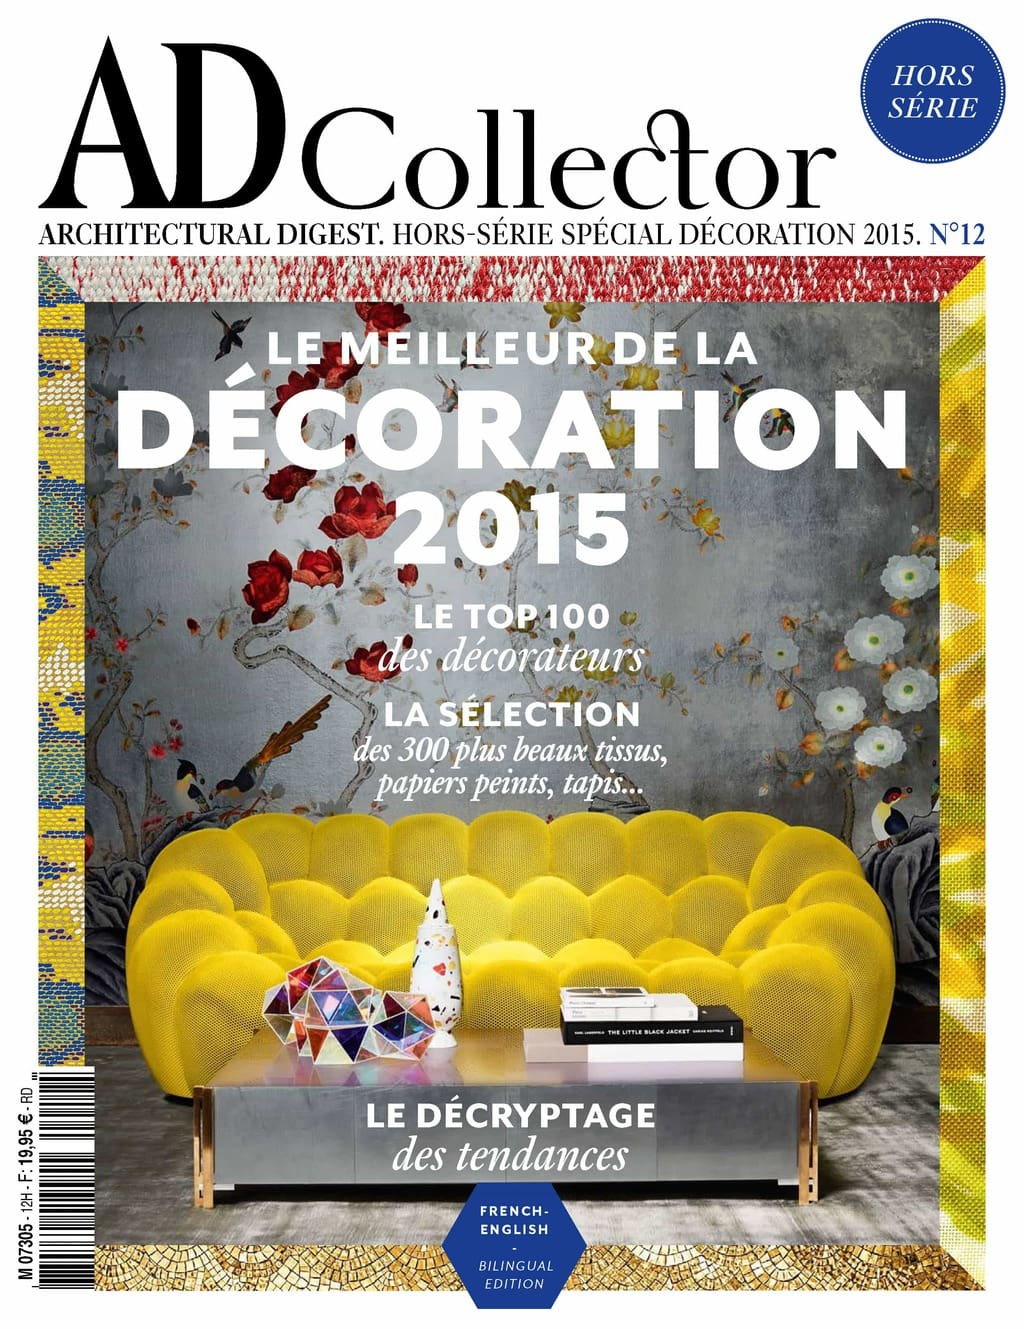 ad-collector-2015-12_page_1